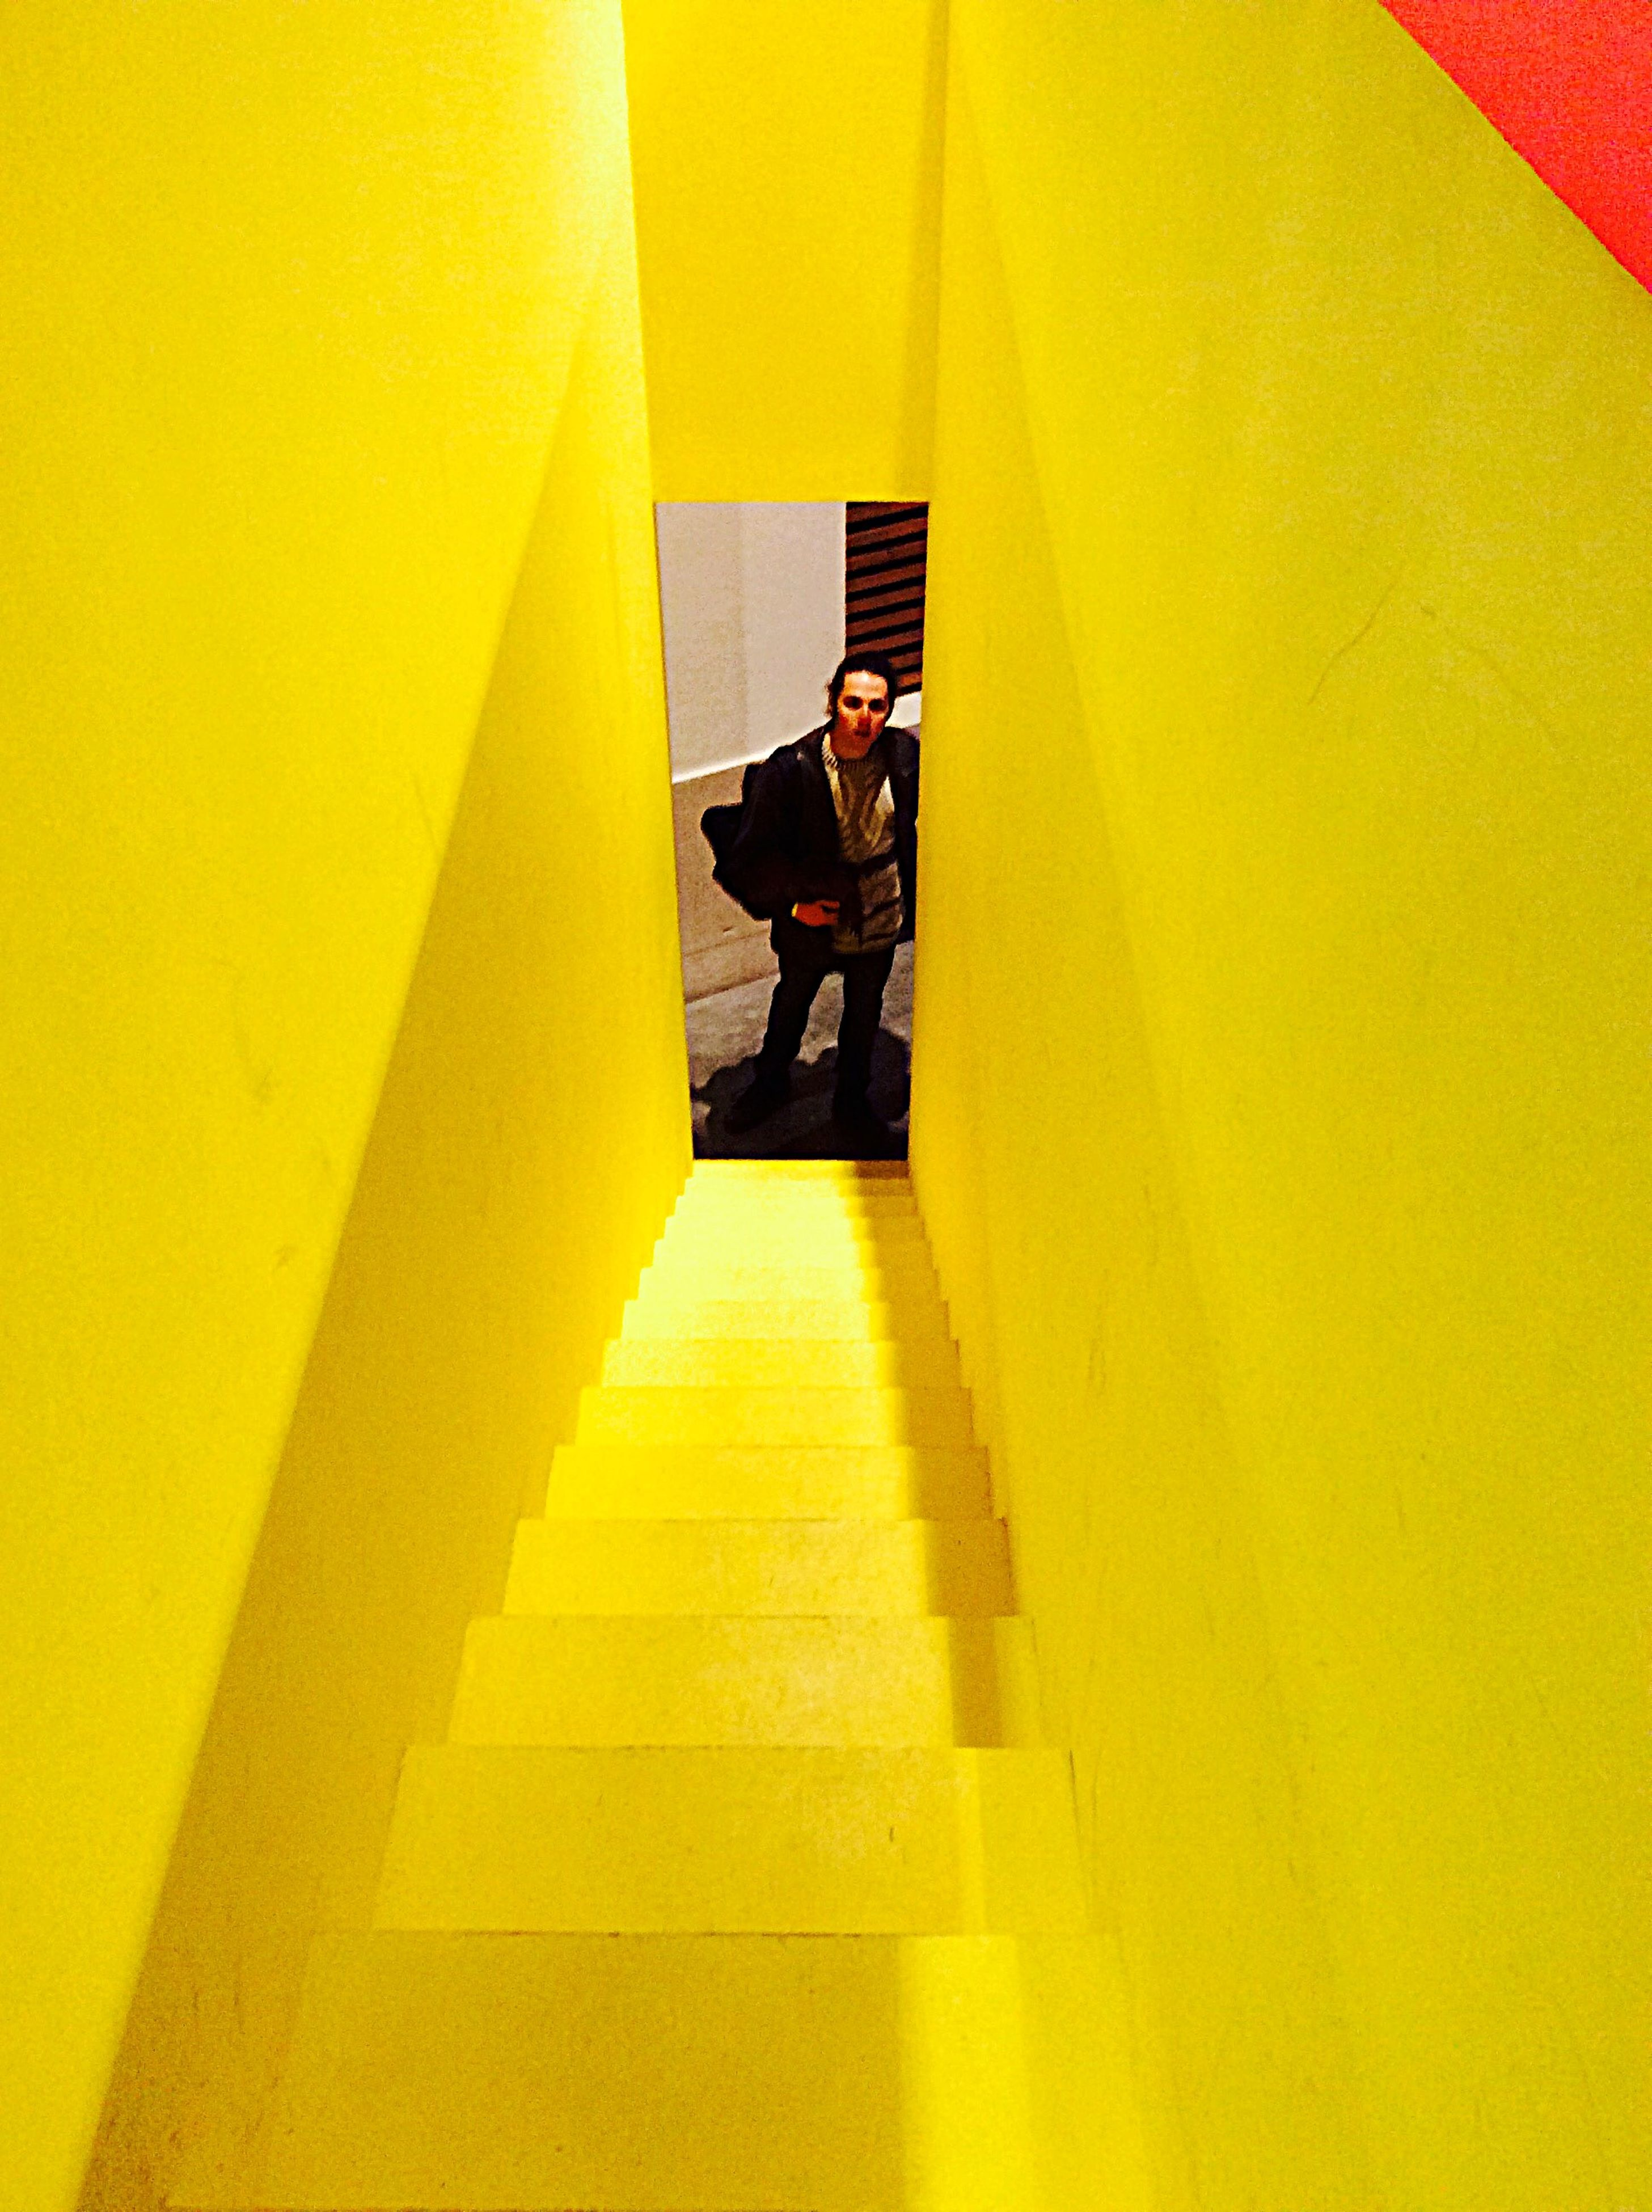 indoors, yellow, men, steps, walking, person, high angle view, stairs, staircase, narrow, vibrant color, convenience, architectural feature, modern, moving up, day, hand rail, corridor